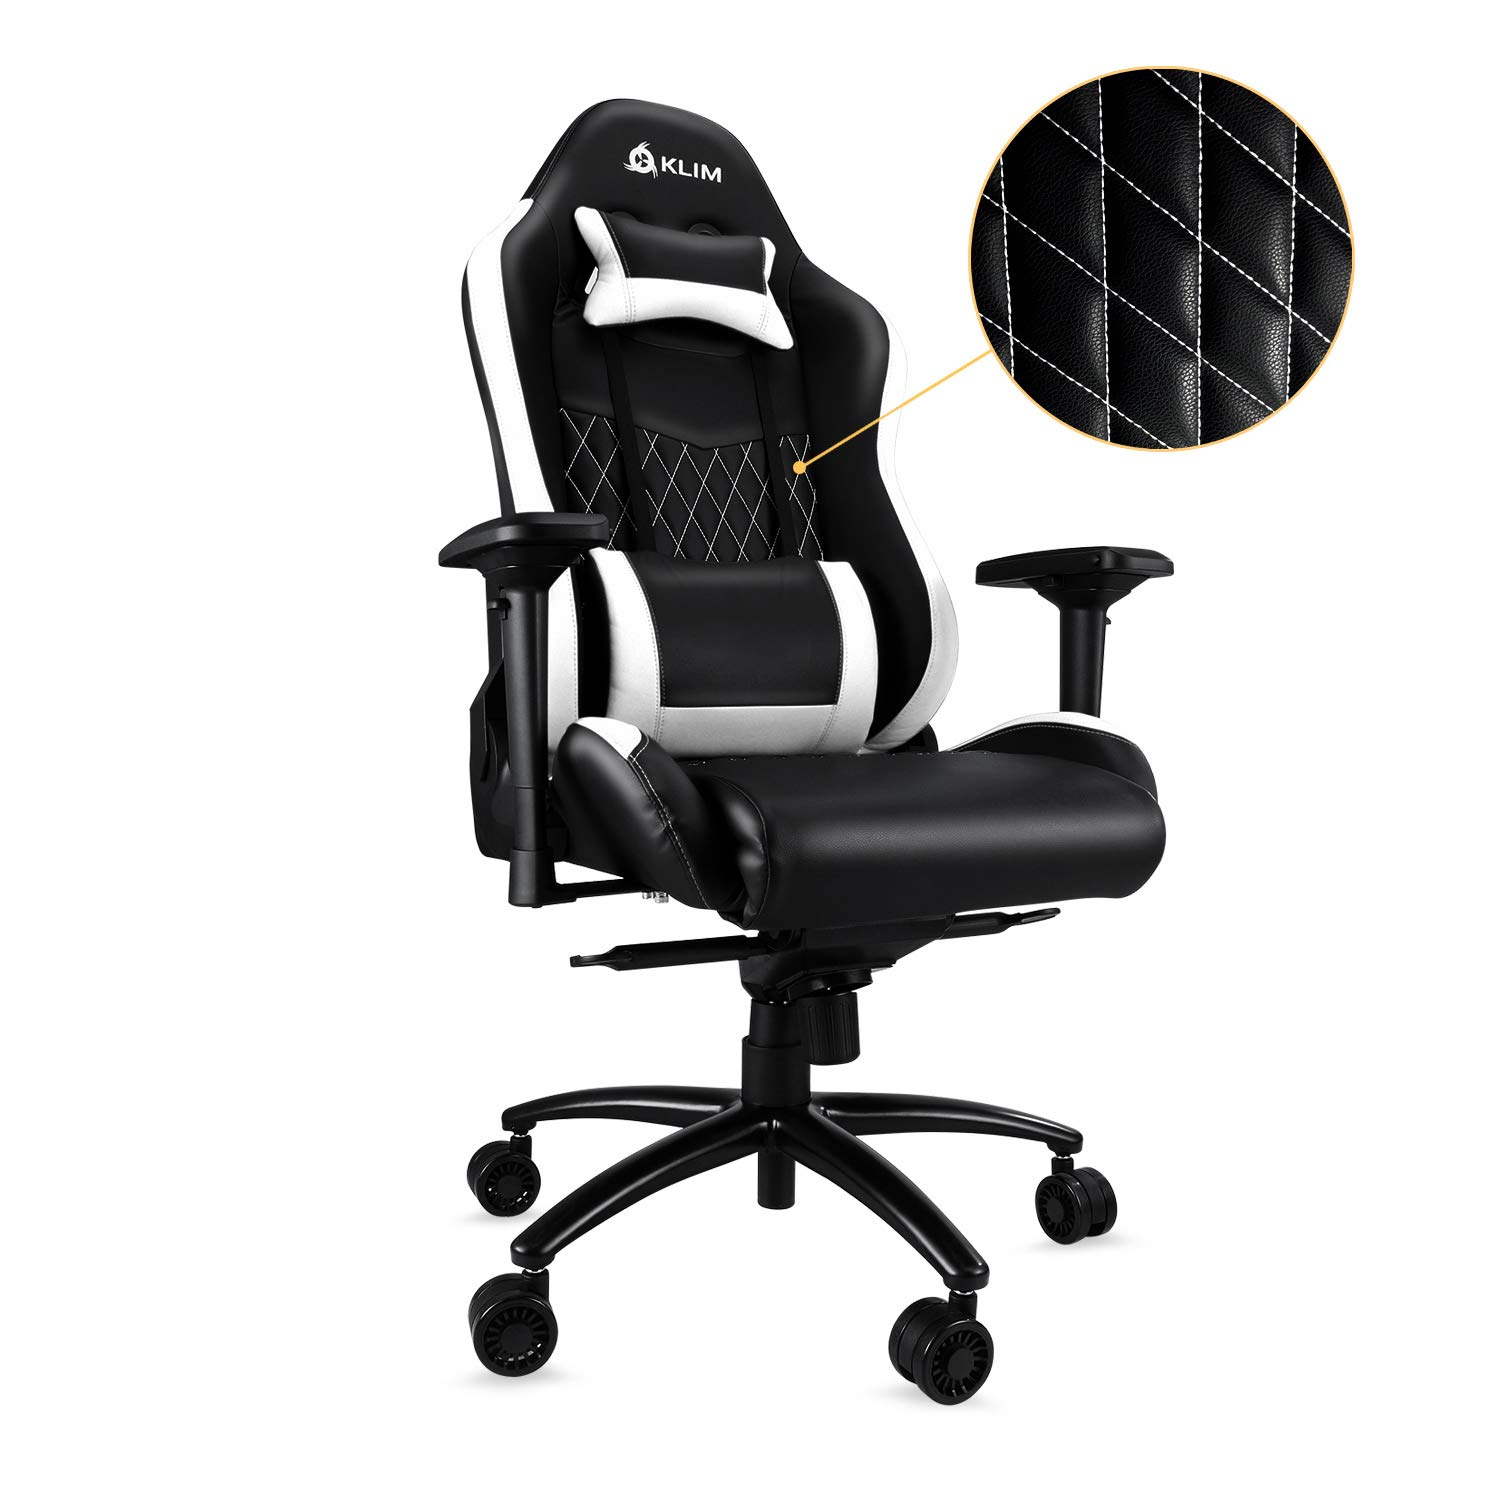 ... Racing Computer Chair - Back & Head Support - New - Adjustable Armrest - Desk & Office Recliner - Silla Gamer - Black & White Cushion: Kitchen & Dining